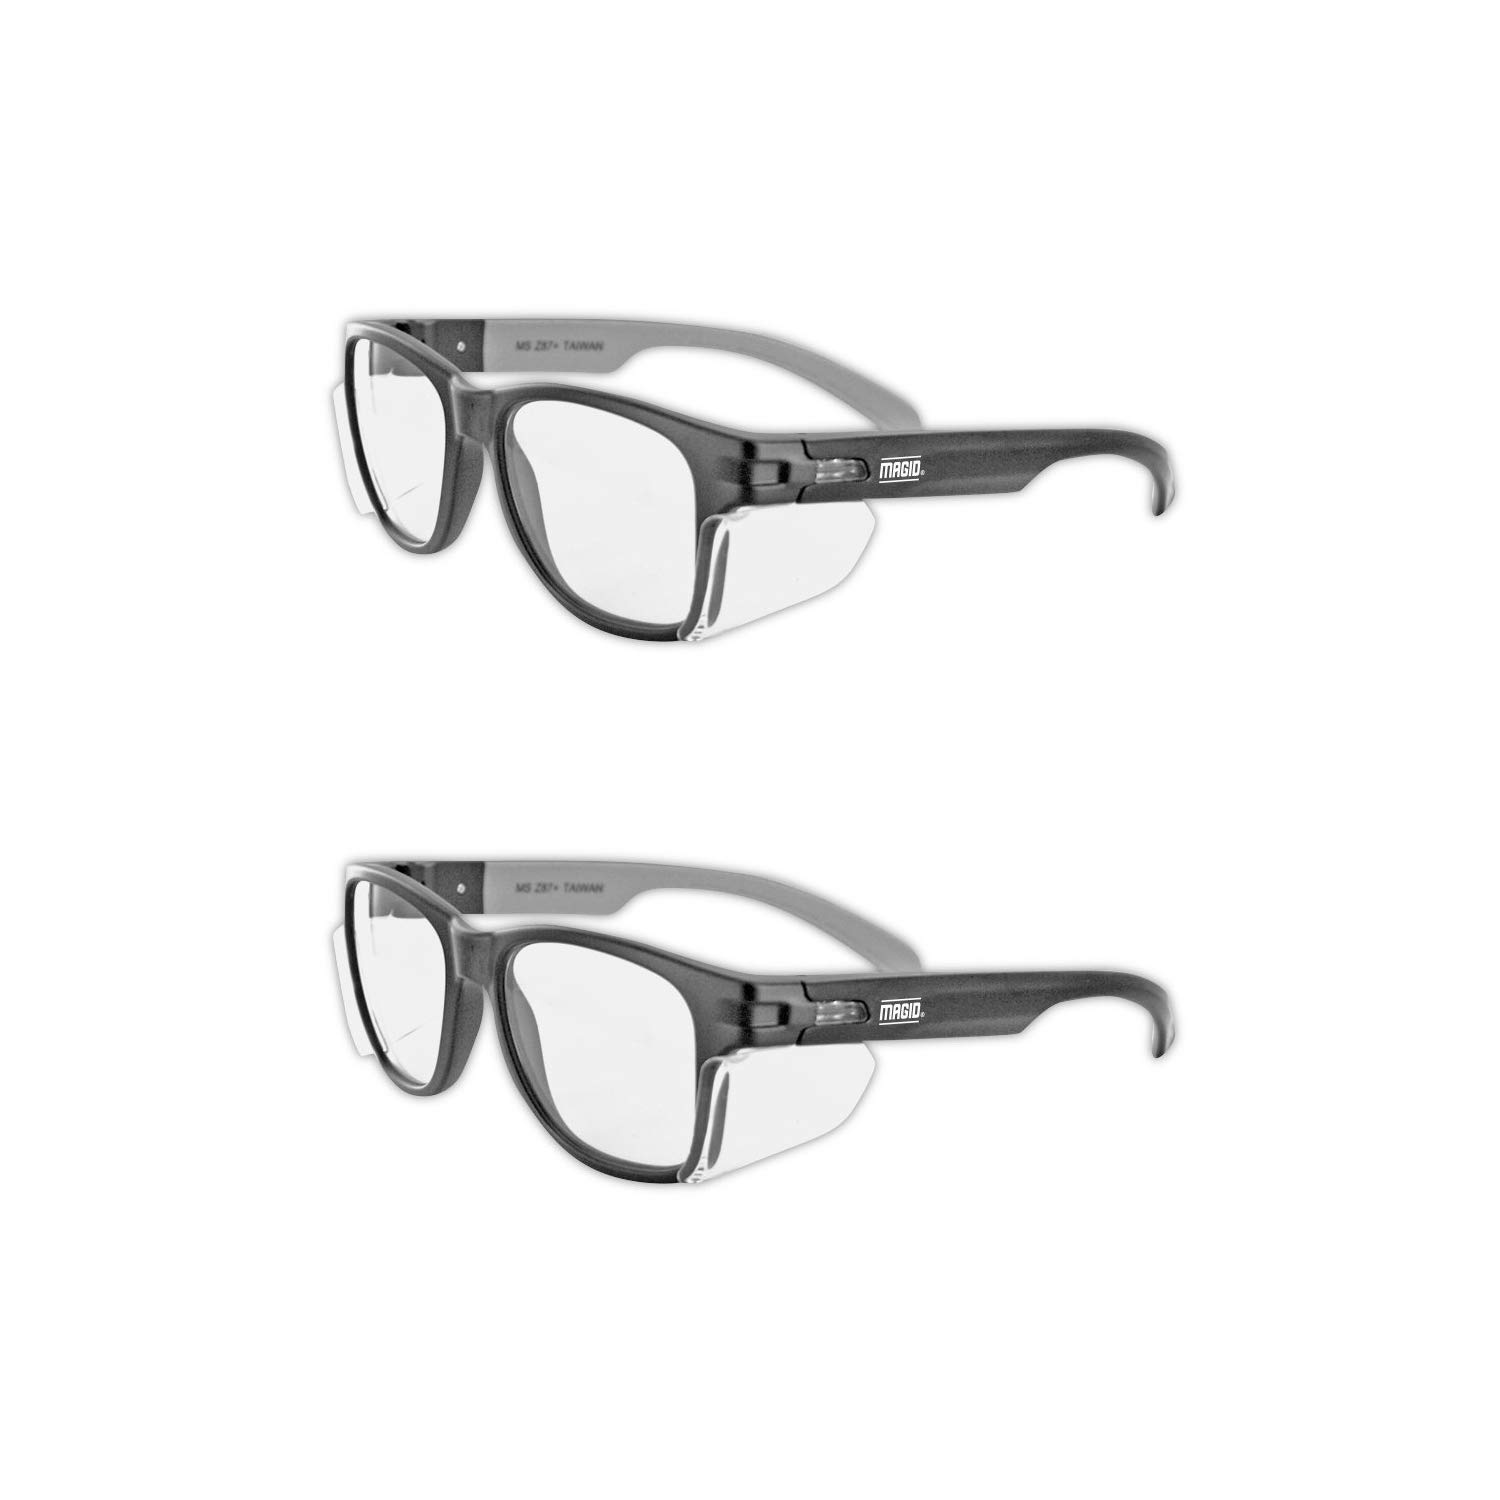 19368874f4c9 Best Rated in Safety Goggles   Glasses   Helpful Customer Reviews ...